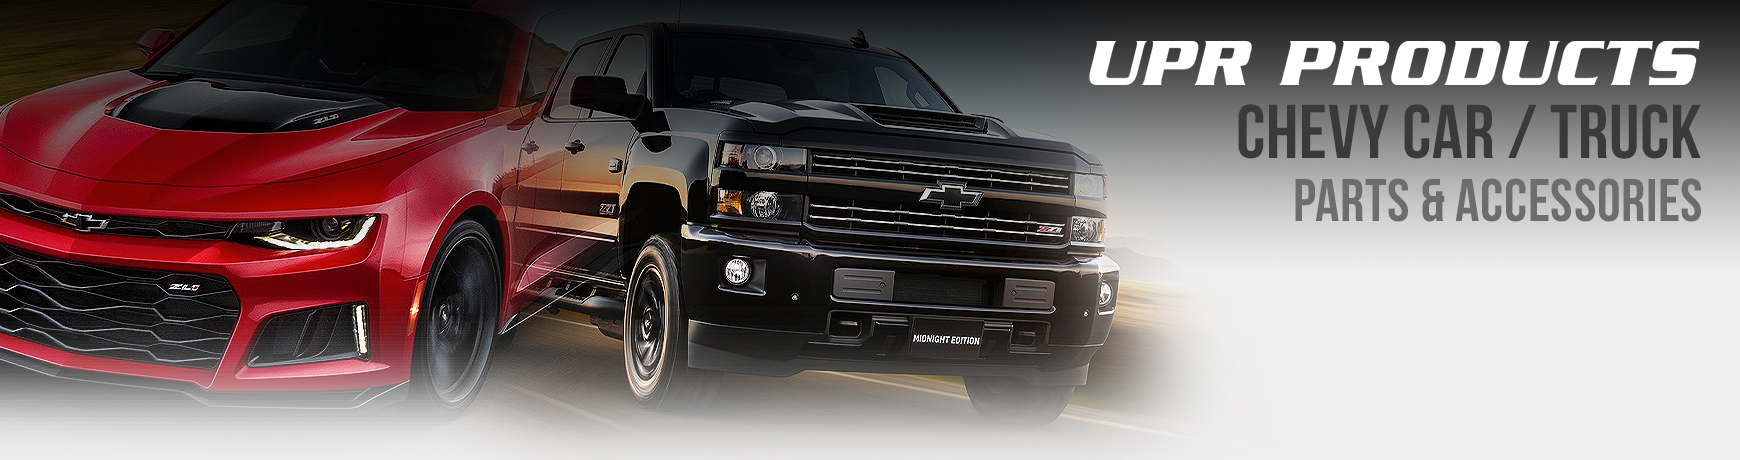 chevy-gmc-vehicles-parts-accessories.jpg